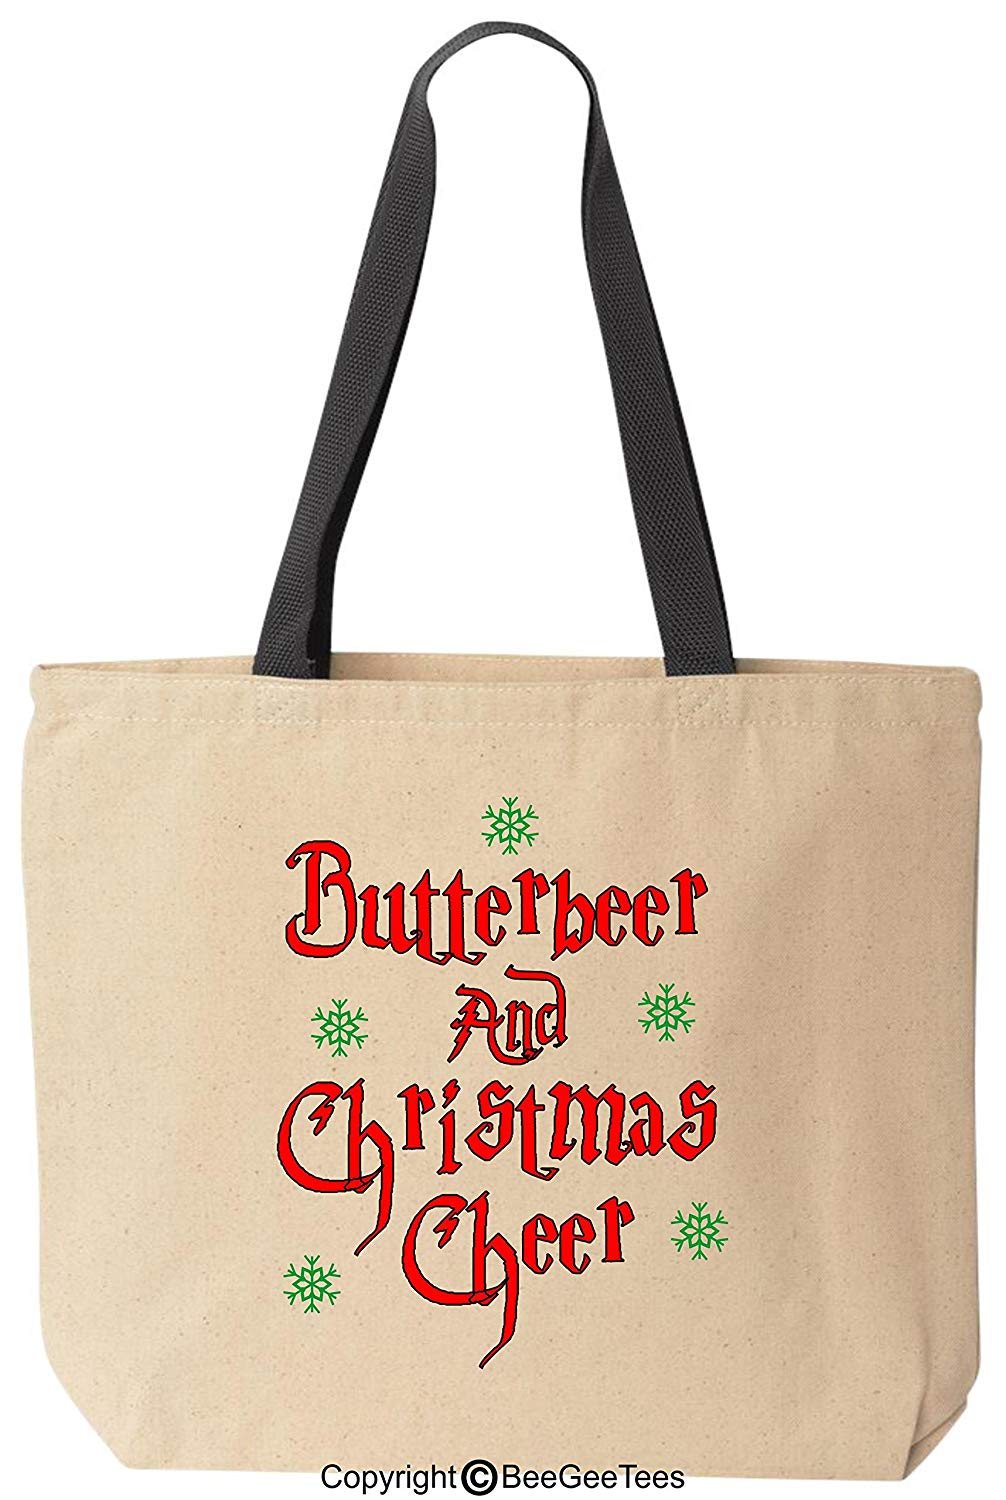 Butterbeer Christmas Cheer Funny Harry Potter Inspired Canvas Tote Bag Hogwarts Wizard by BeeGeeTees